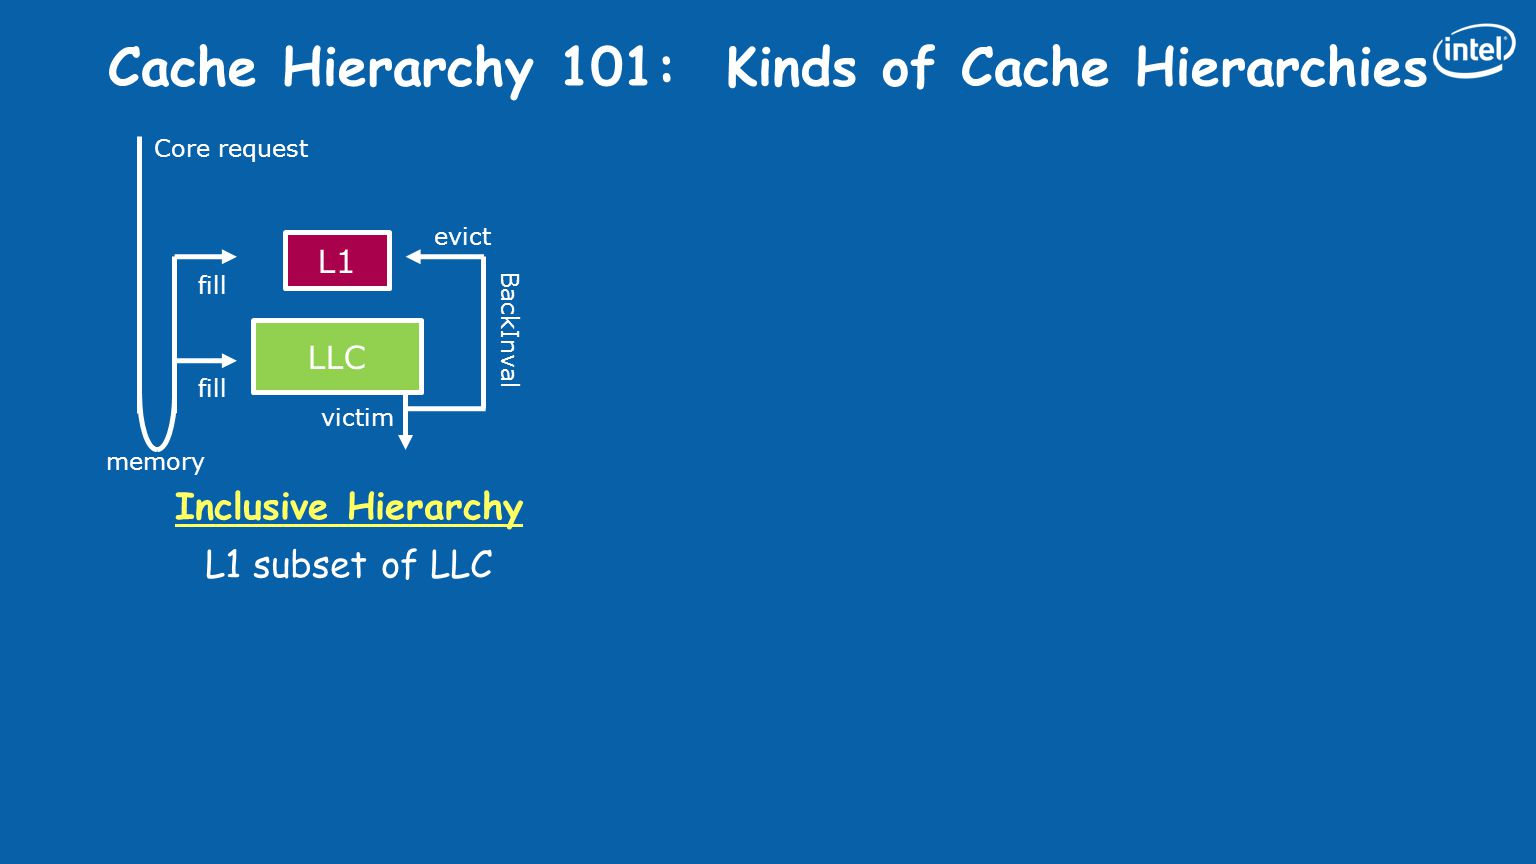 Cache Hierarchy 101: Kinds of Cache Hierarchies L1 LLC Inclusive Hierarchy L1 subset of LLC Exclusive Hierarchy L1 is NOT in LLC victim L1 LLC victim fill Core request memory evict victim